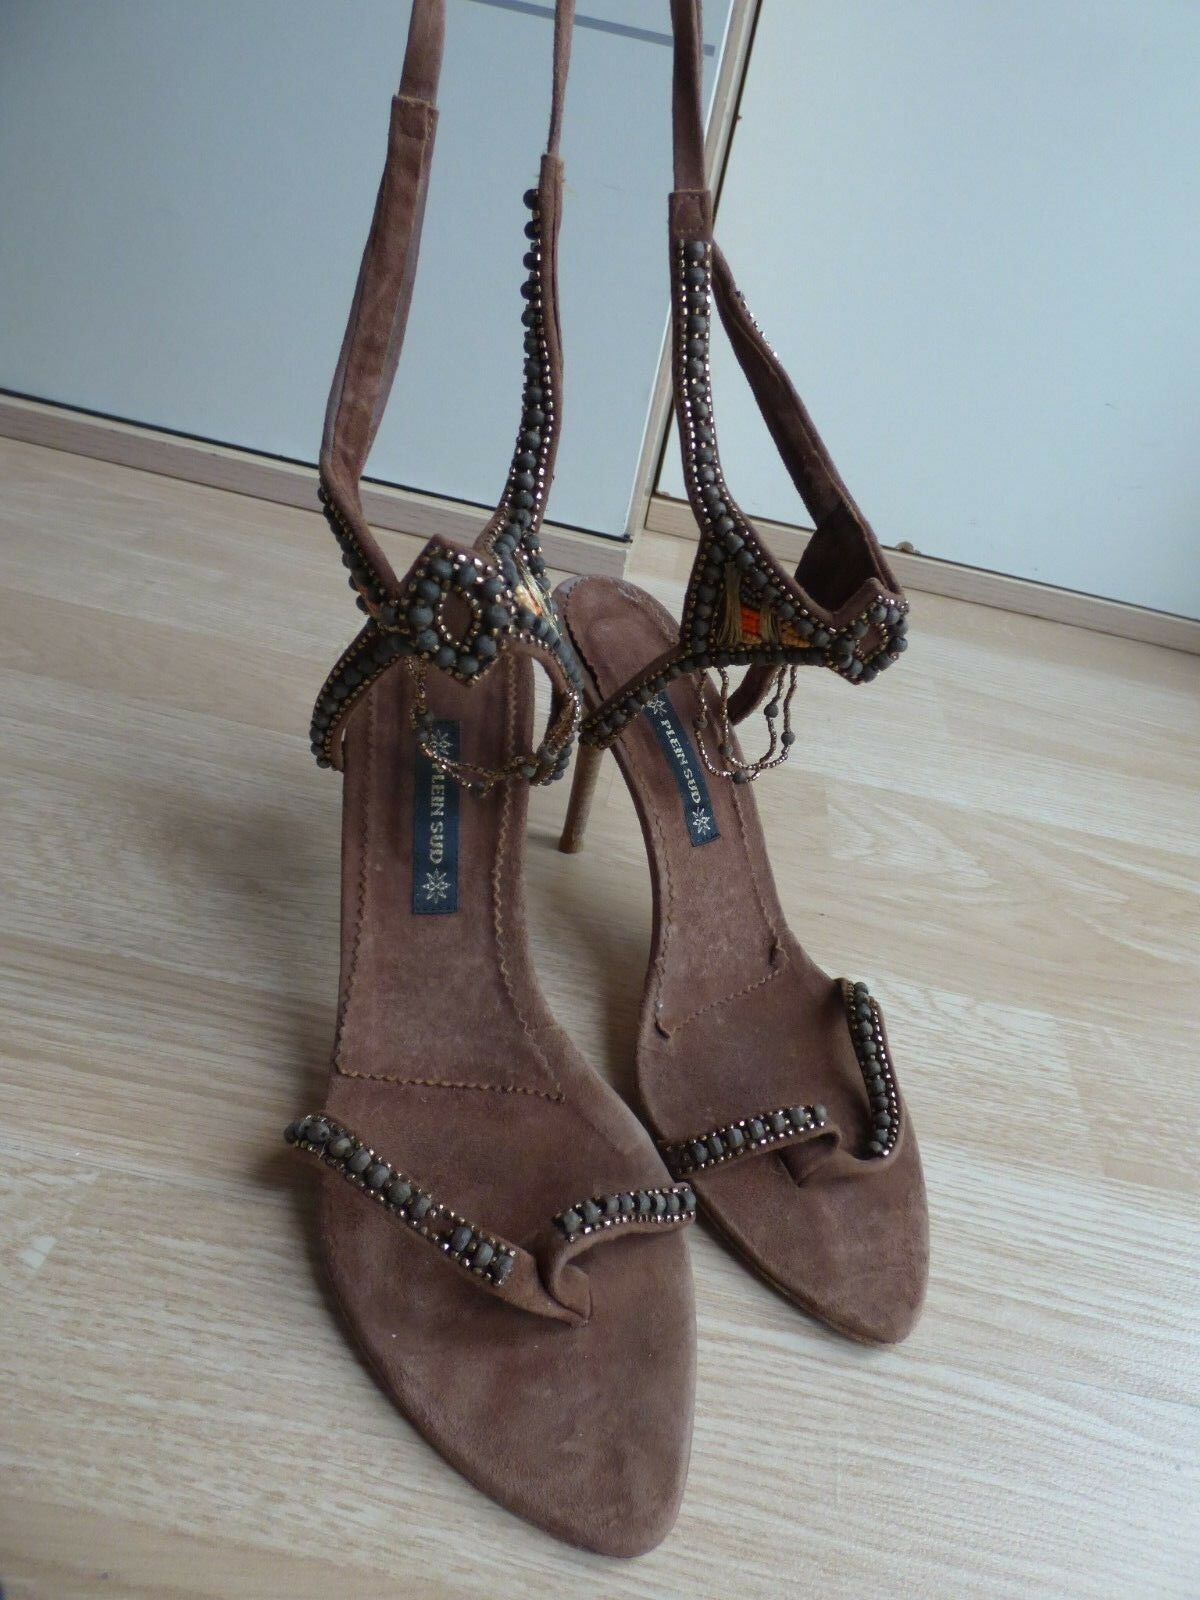 French Designer 37 Plein Sud Strappy Sandals  Eur 37 Designer Brown Suede Embellished efb005